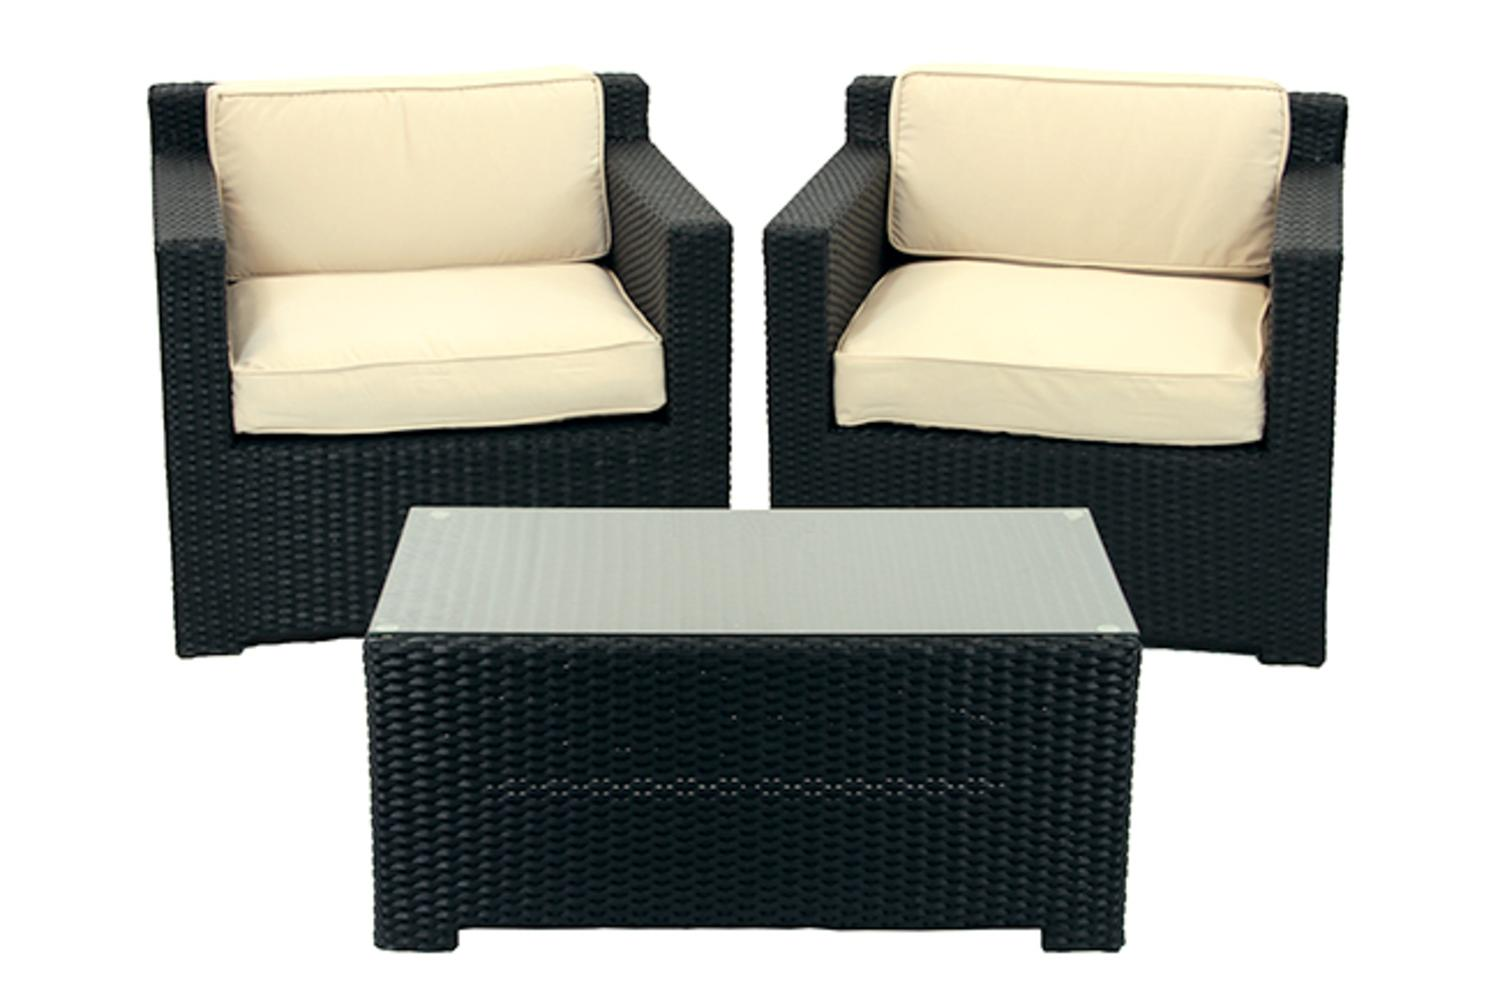 3pc Black And Beige Wicker Outdoor Patio Furniture Set With Cushions 34